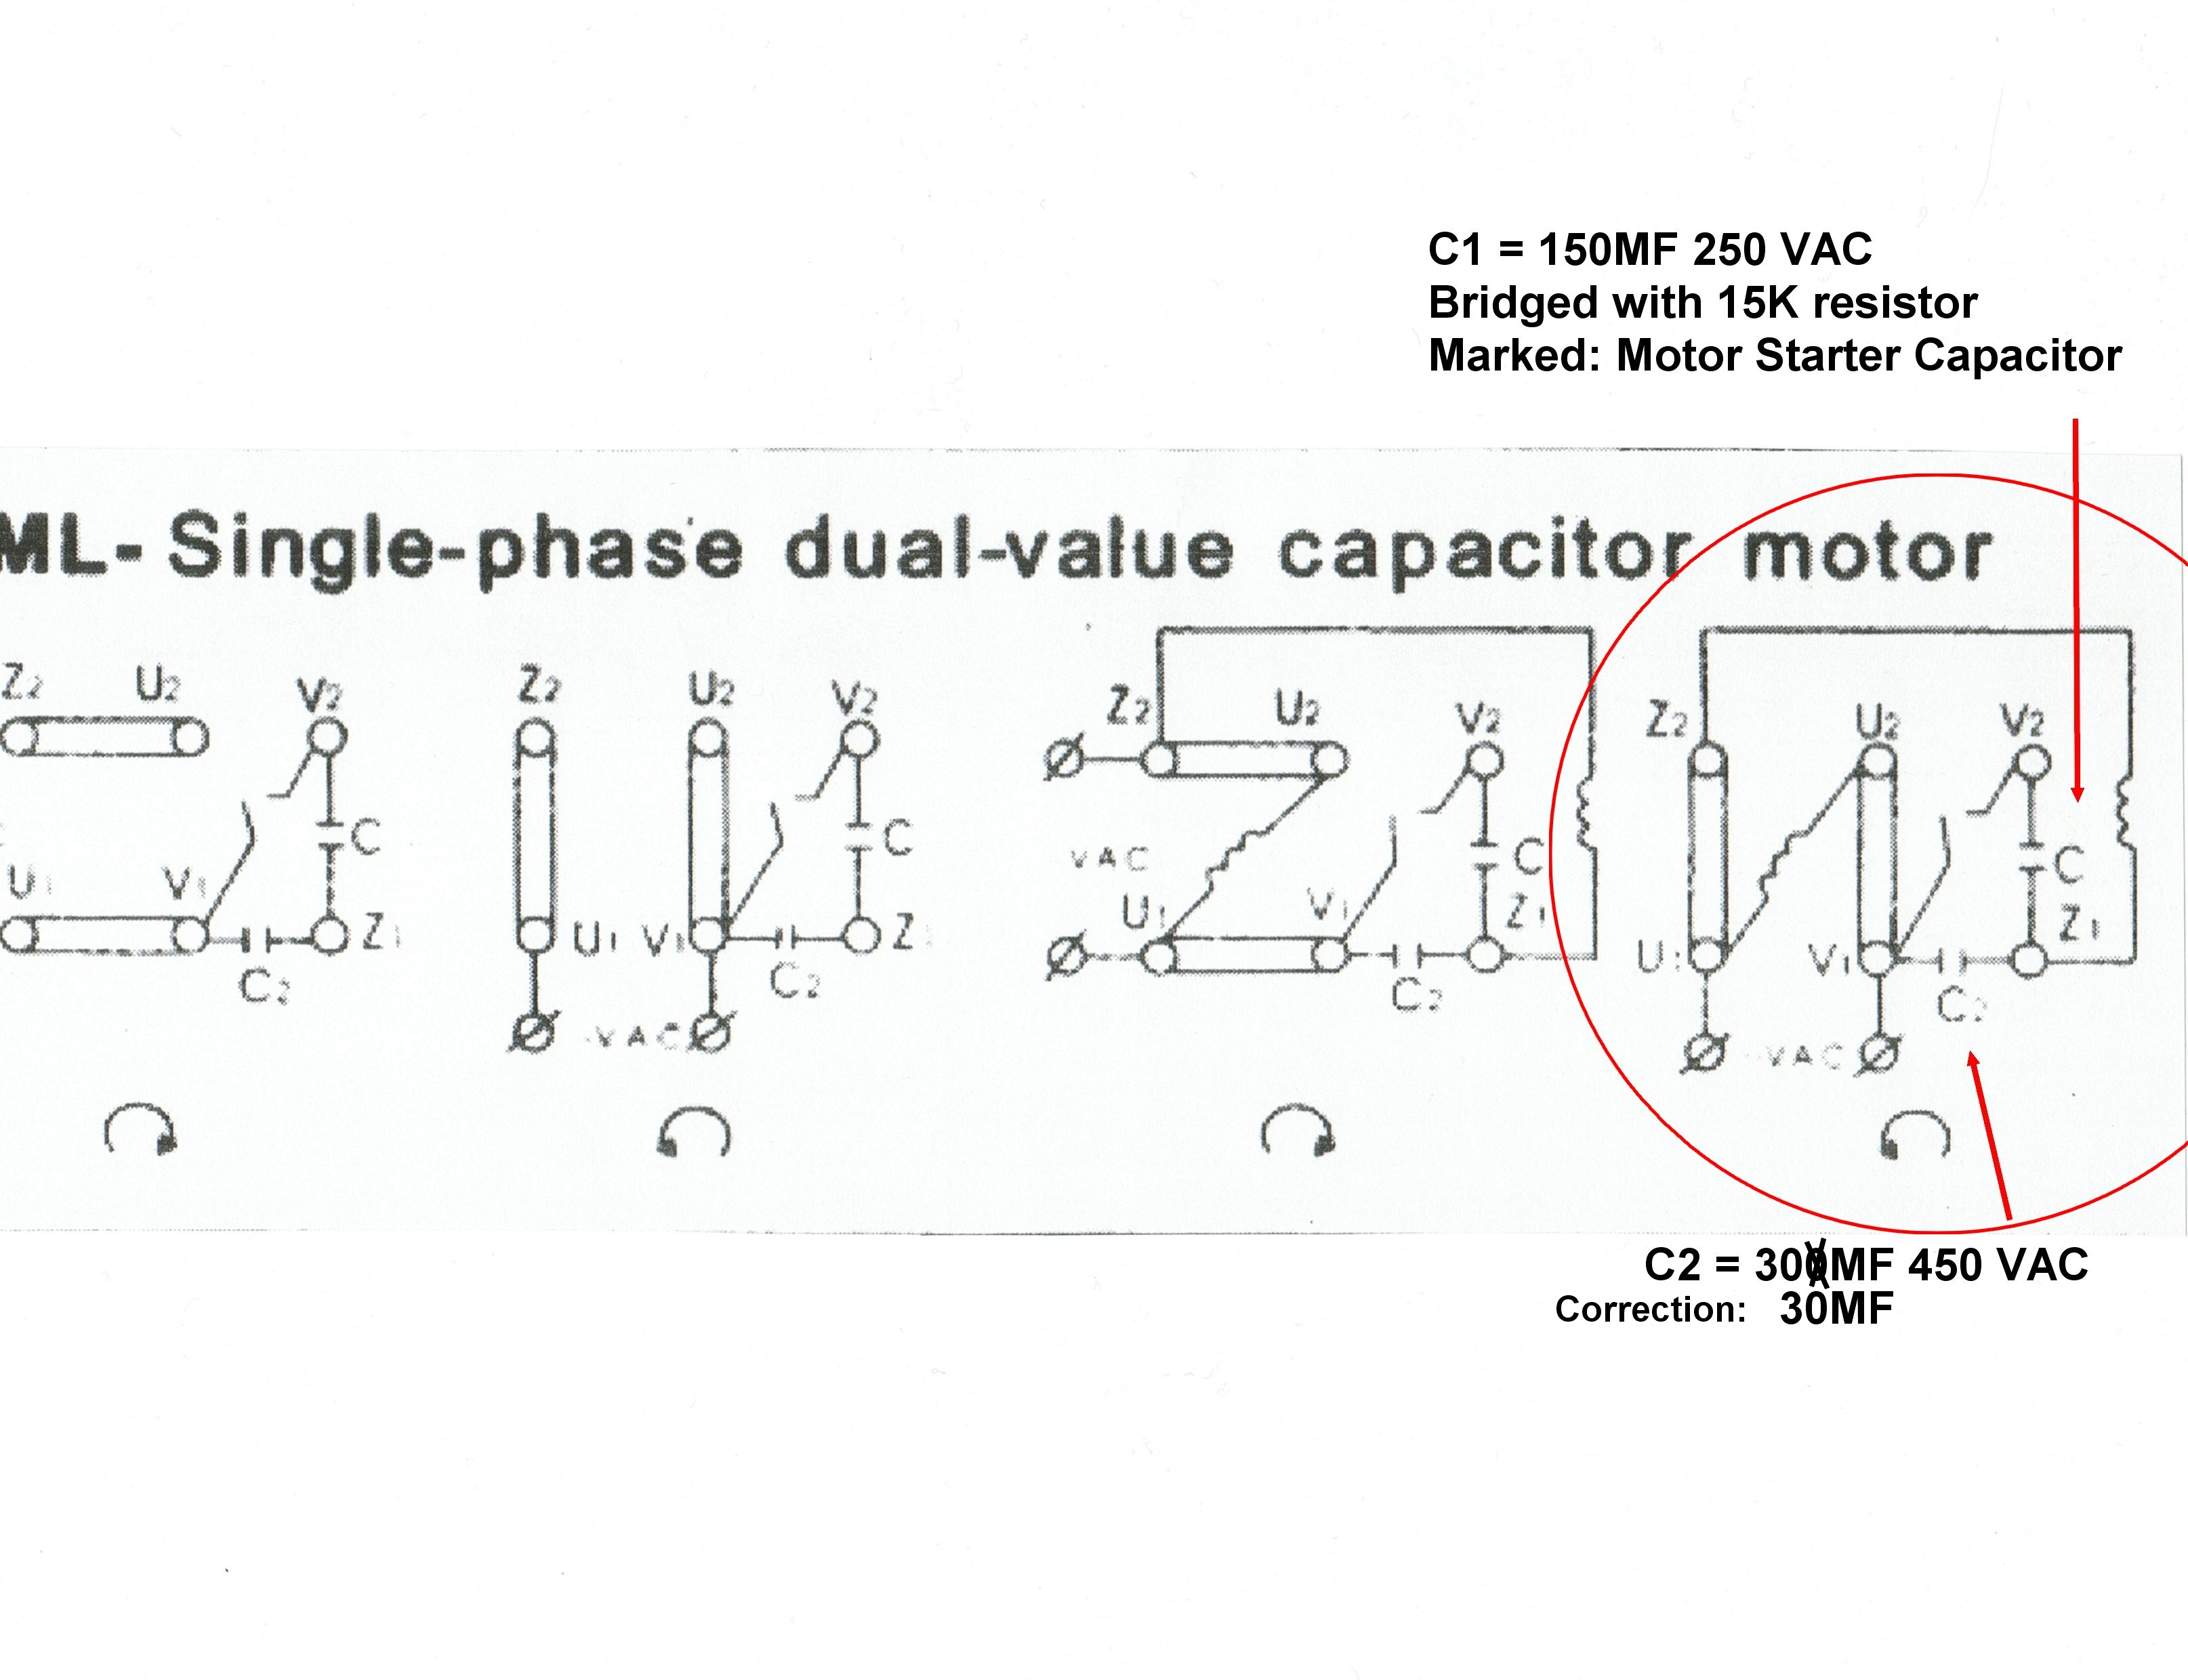 Single Phase Capacitor Motor Wiring Diagrams | Wiring Diagram - Single Phase Motor Wiring Diagram With Capacitor